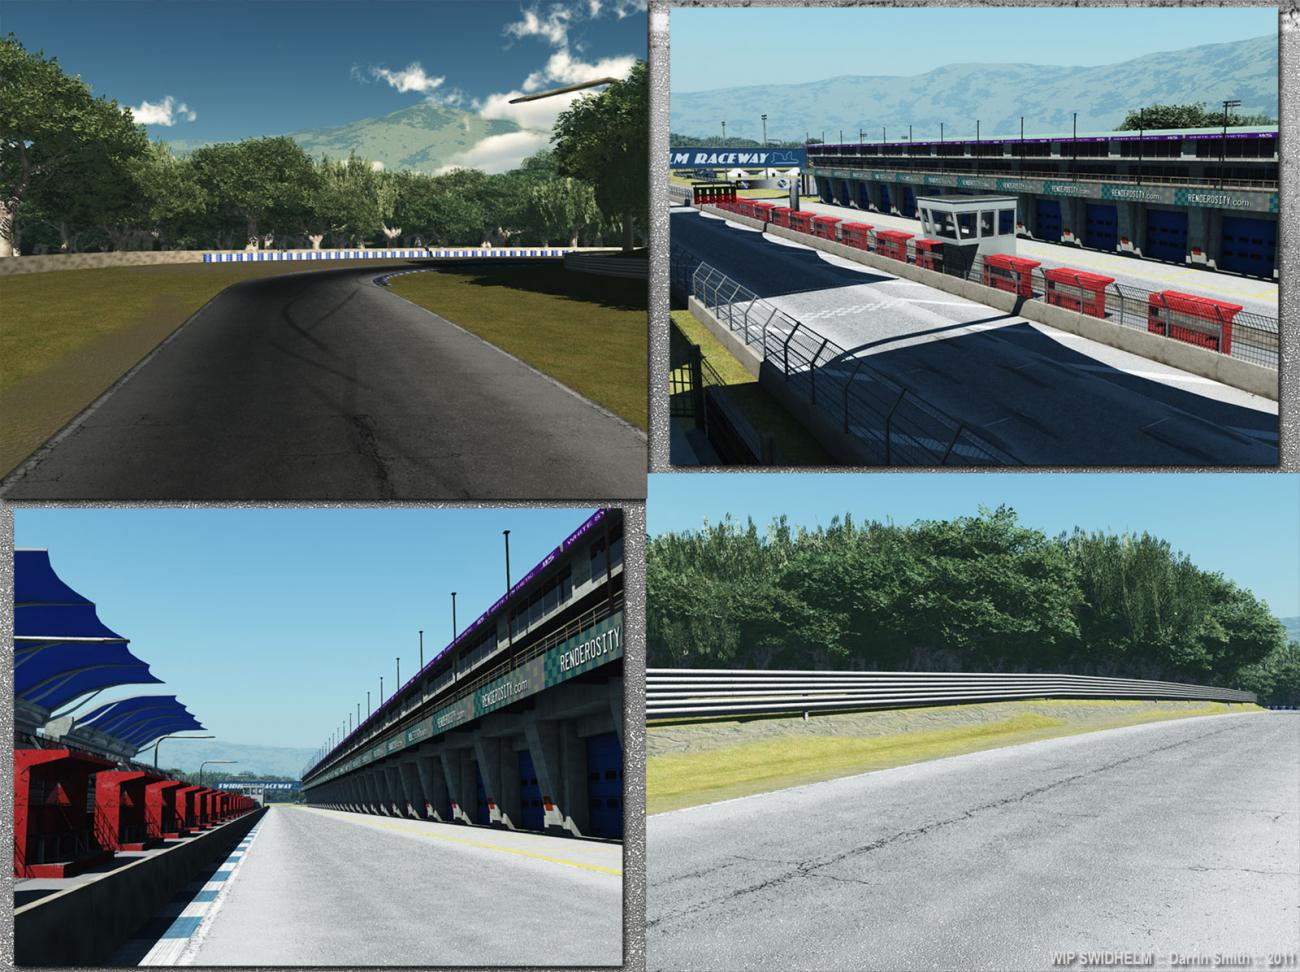 Raceway Nearing Completion by Swidhelm